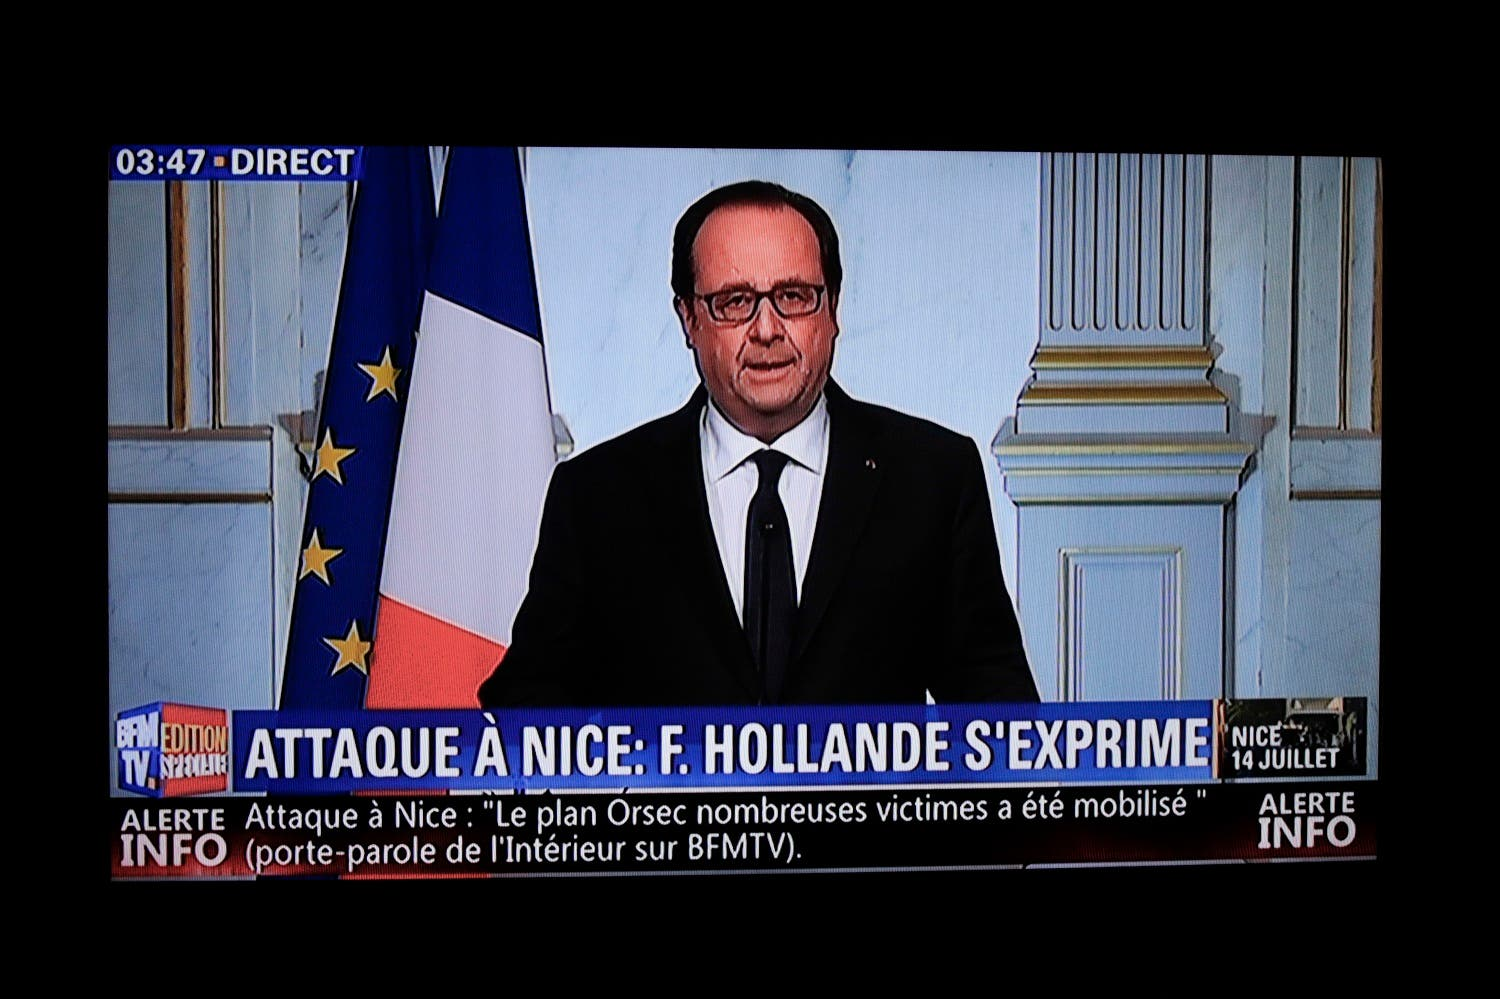 This still image from a BFM TV telecast shows French President Francois Hollande speaking about the attack in Nice on July 14, 2016 in Elysee, Paris. (AFP)